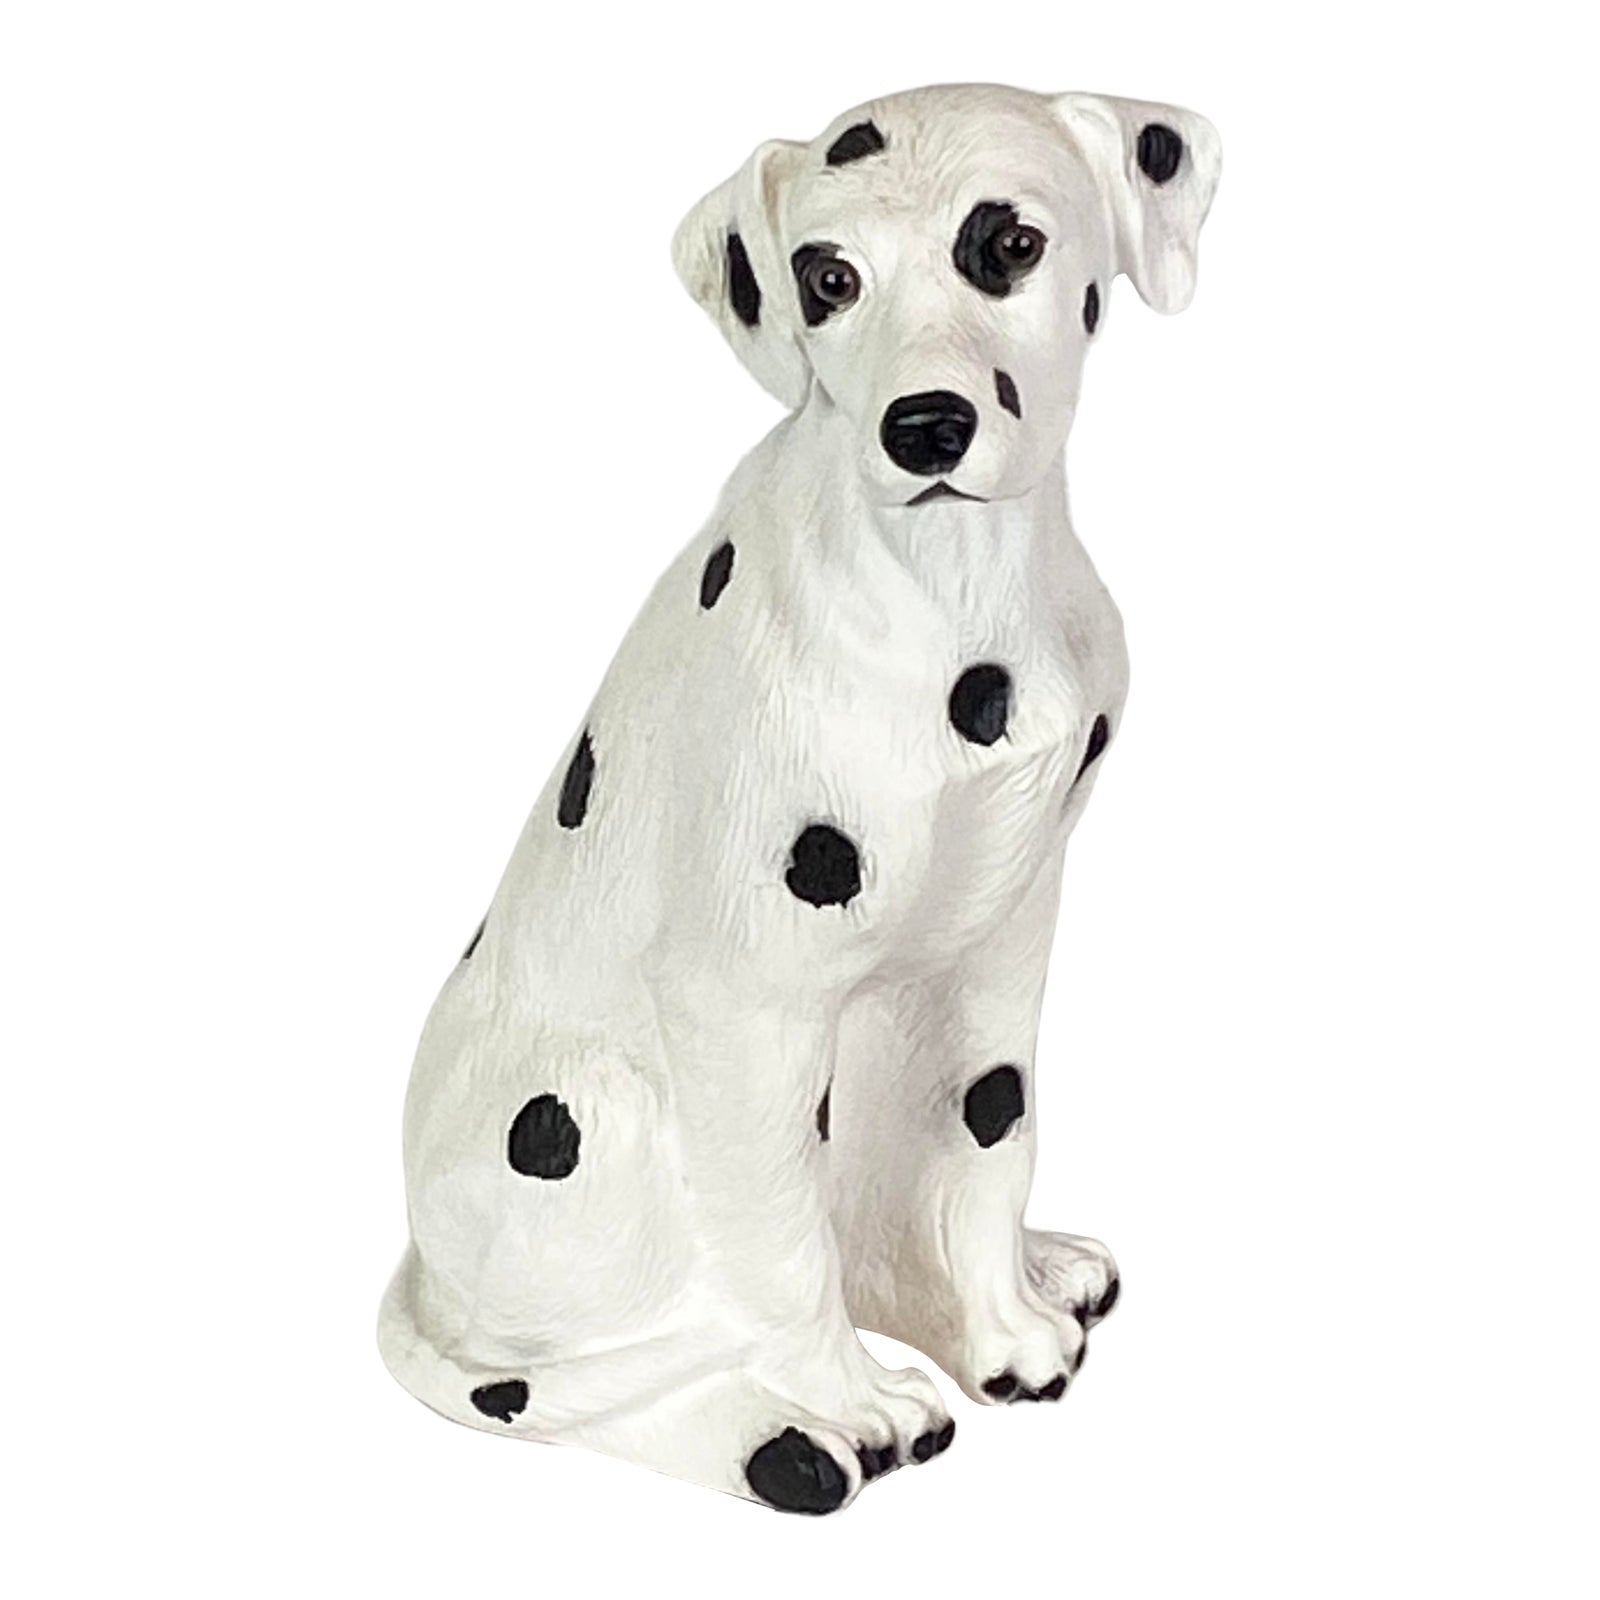 Dalmation Dog White Black Statue